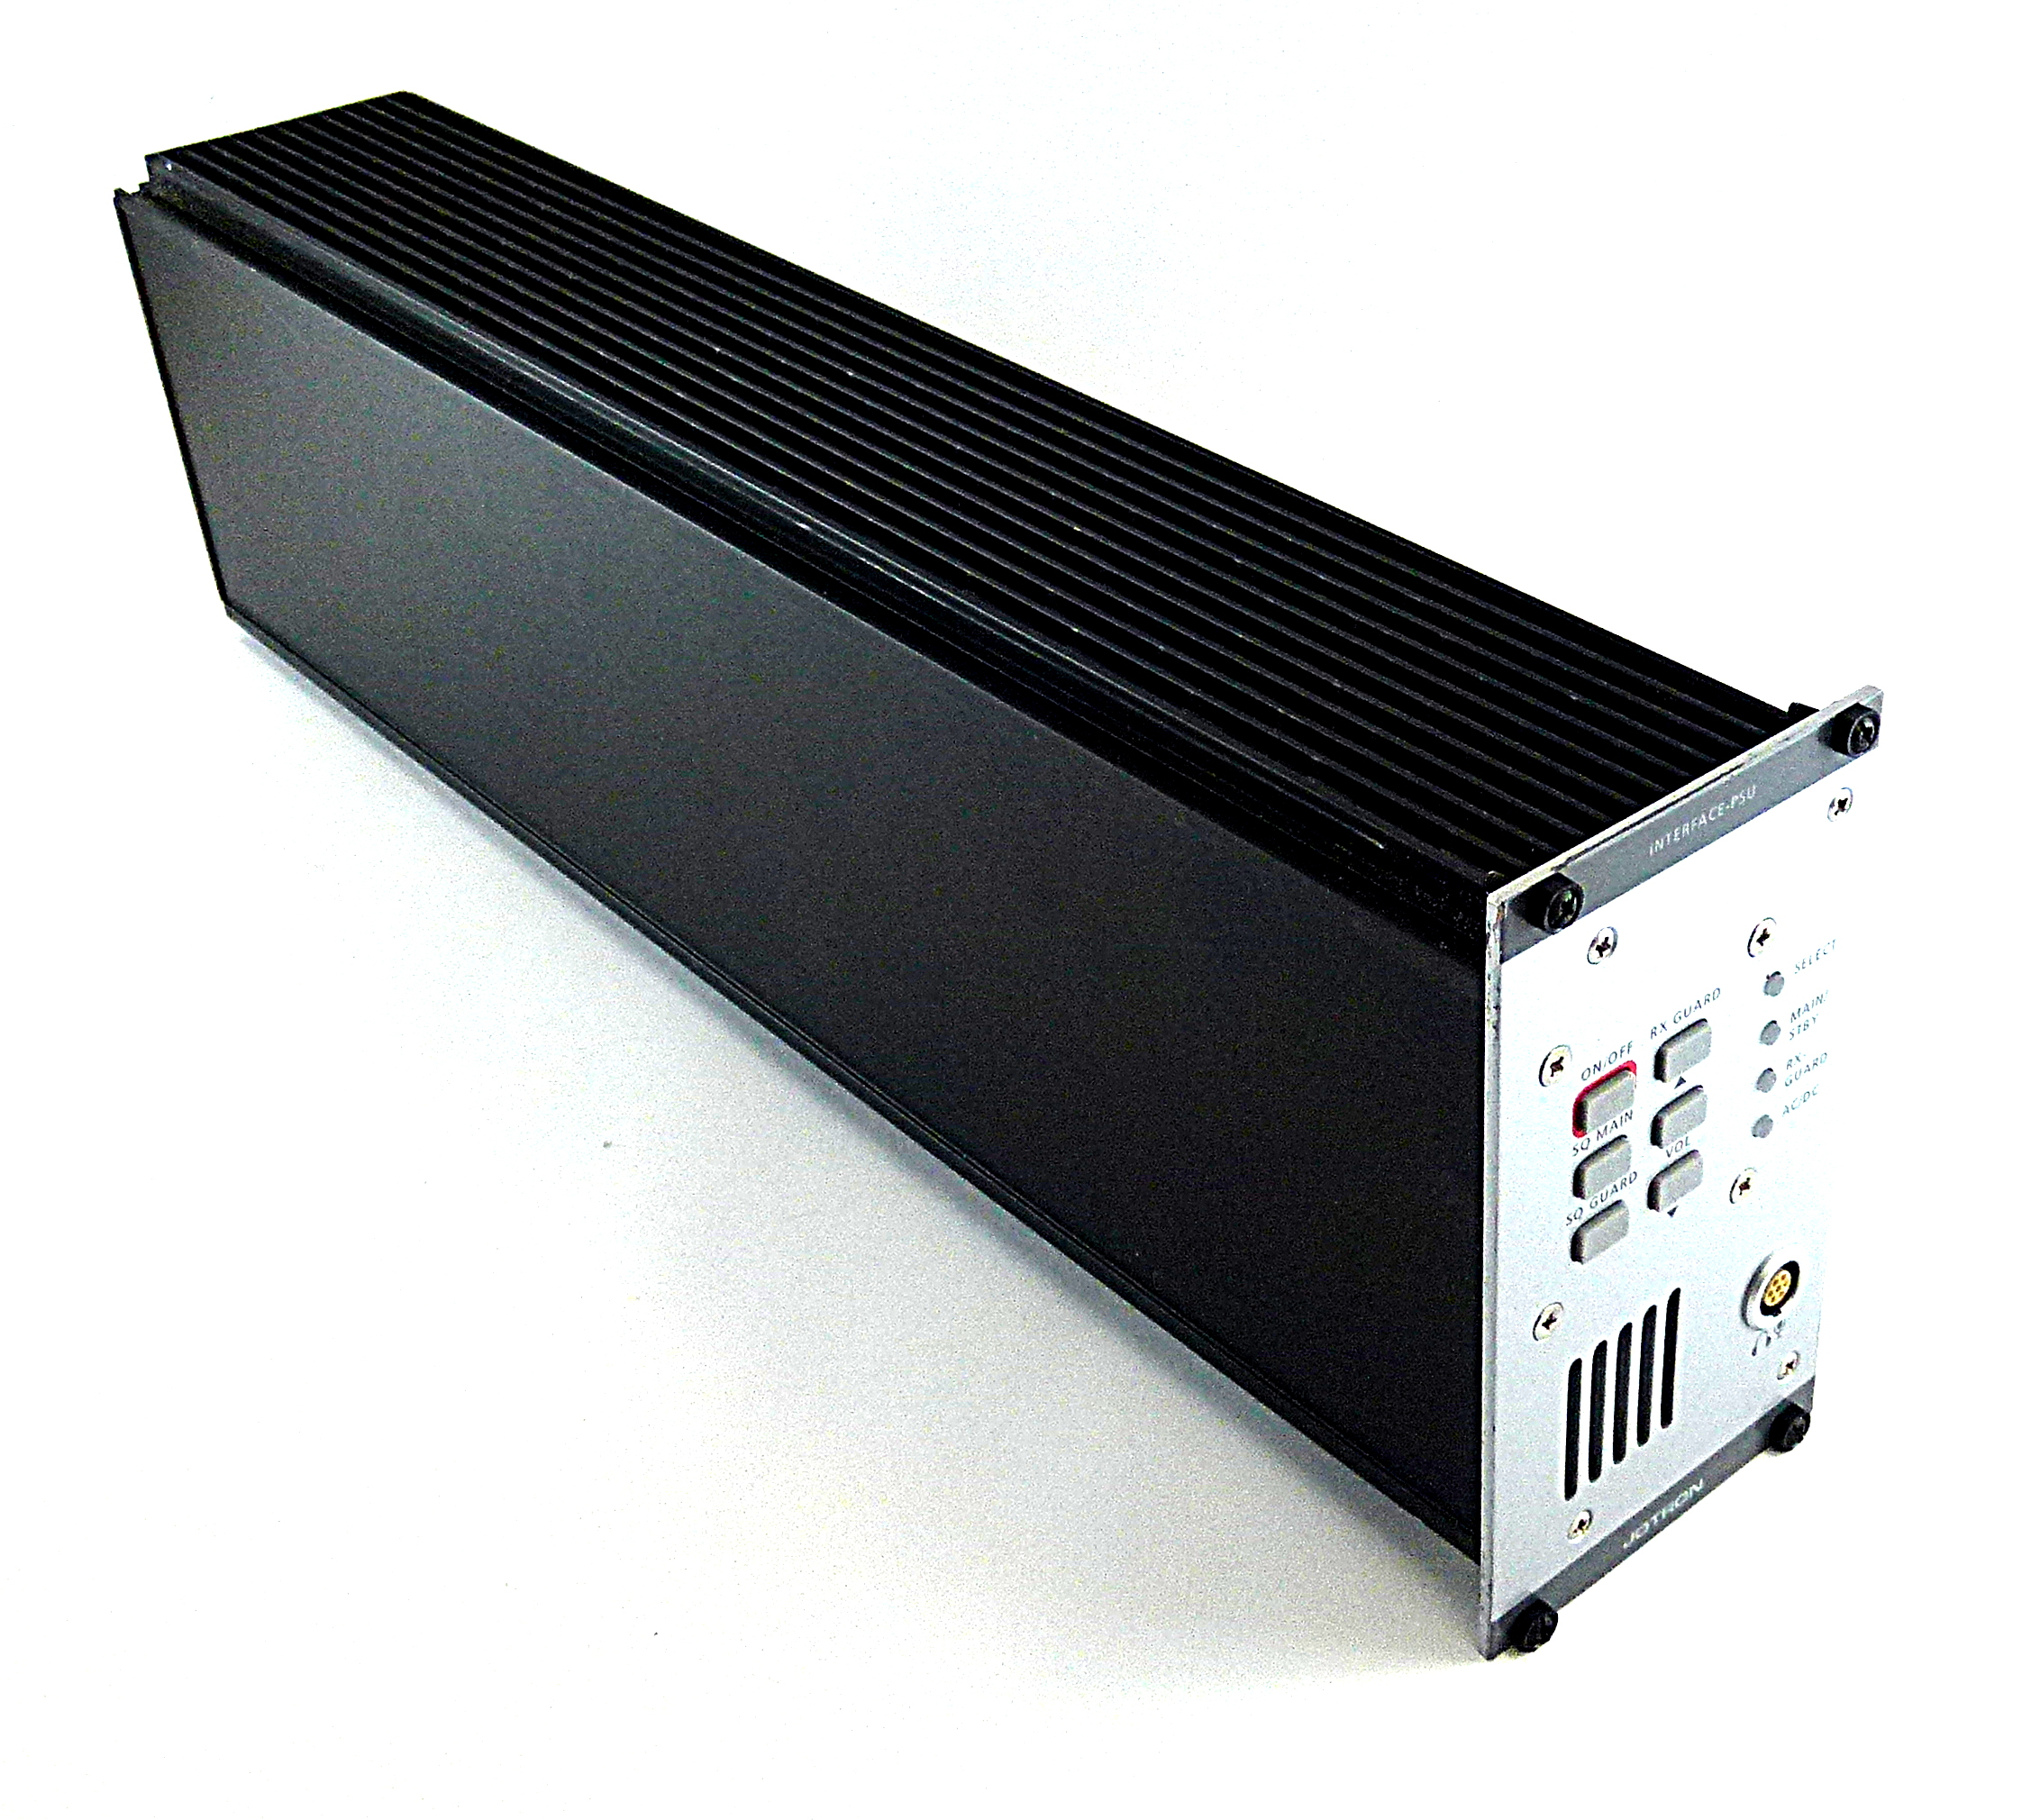 Jotron Interface-PSU Interface/ Power Supply Unit For Analogue Transceiver